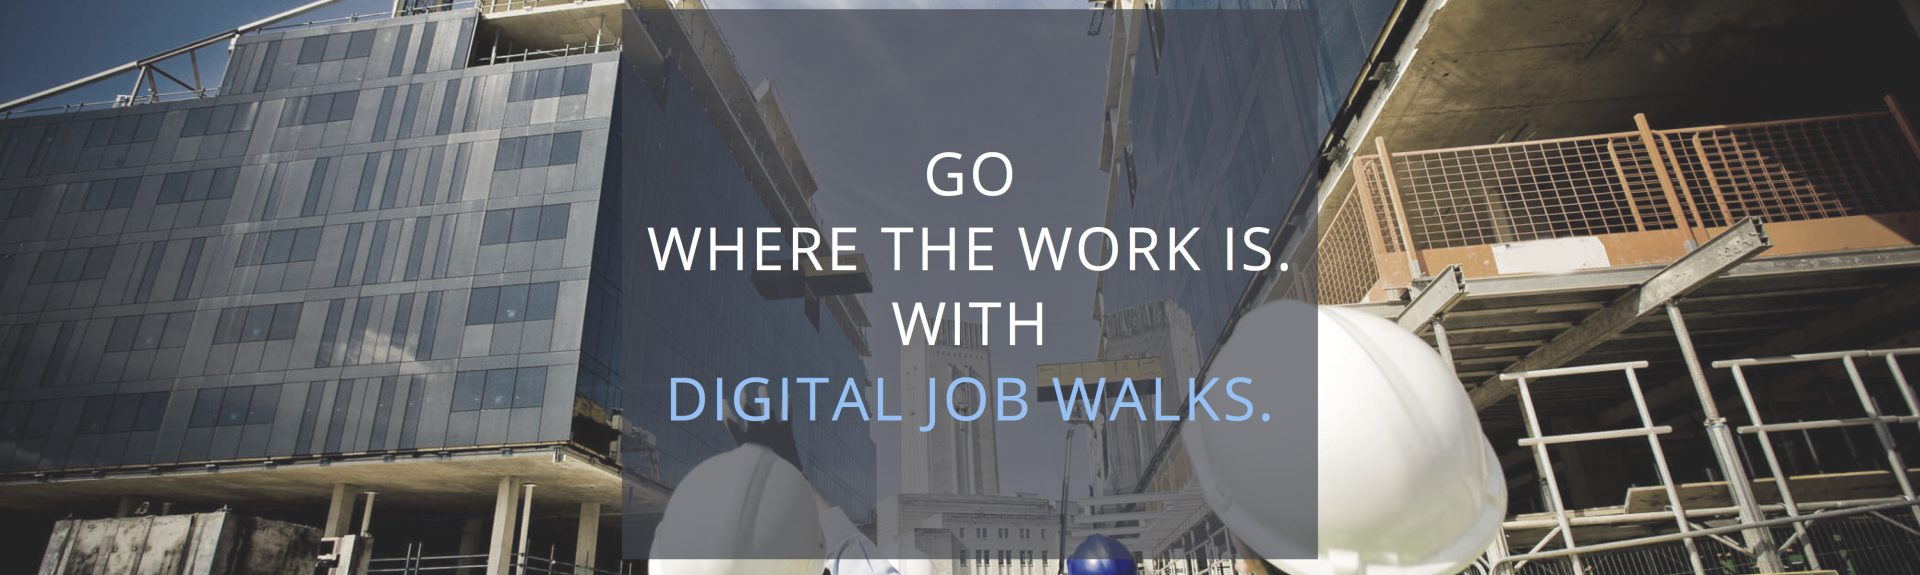 GO WHERE THE WORK IS - WITH DIGITAL JOBWALKS.